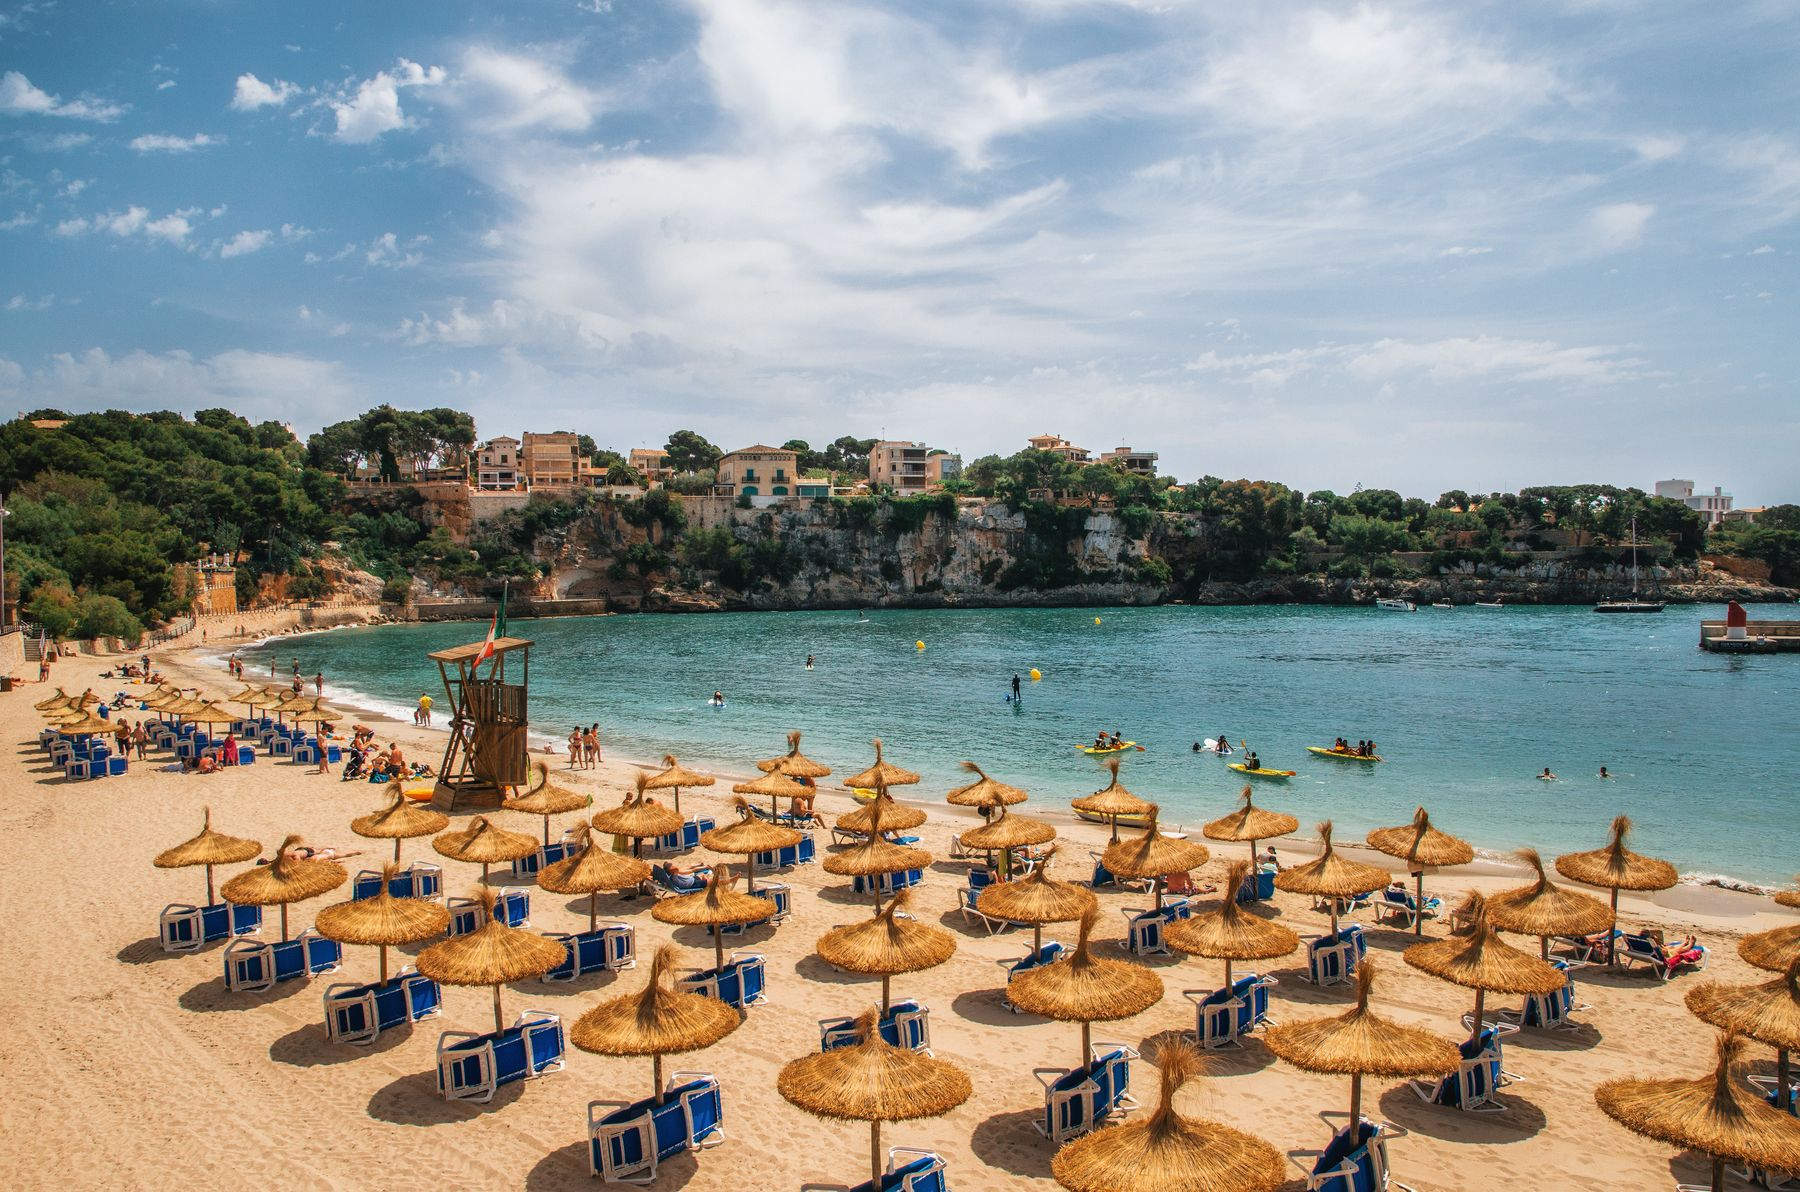 Majorca is one of the destinations you can virtually travel to by means of travel shows on Netflix and other platforms